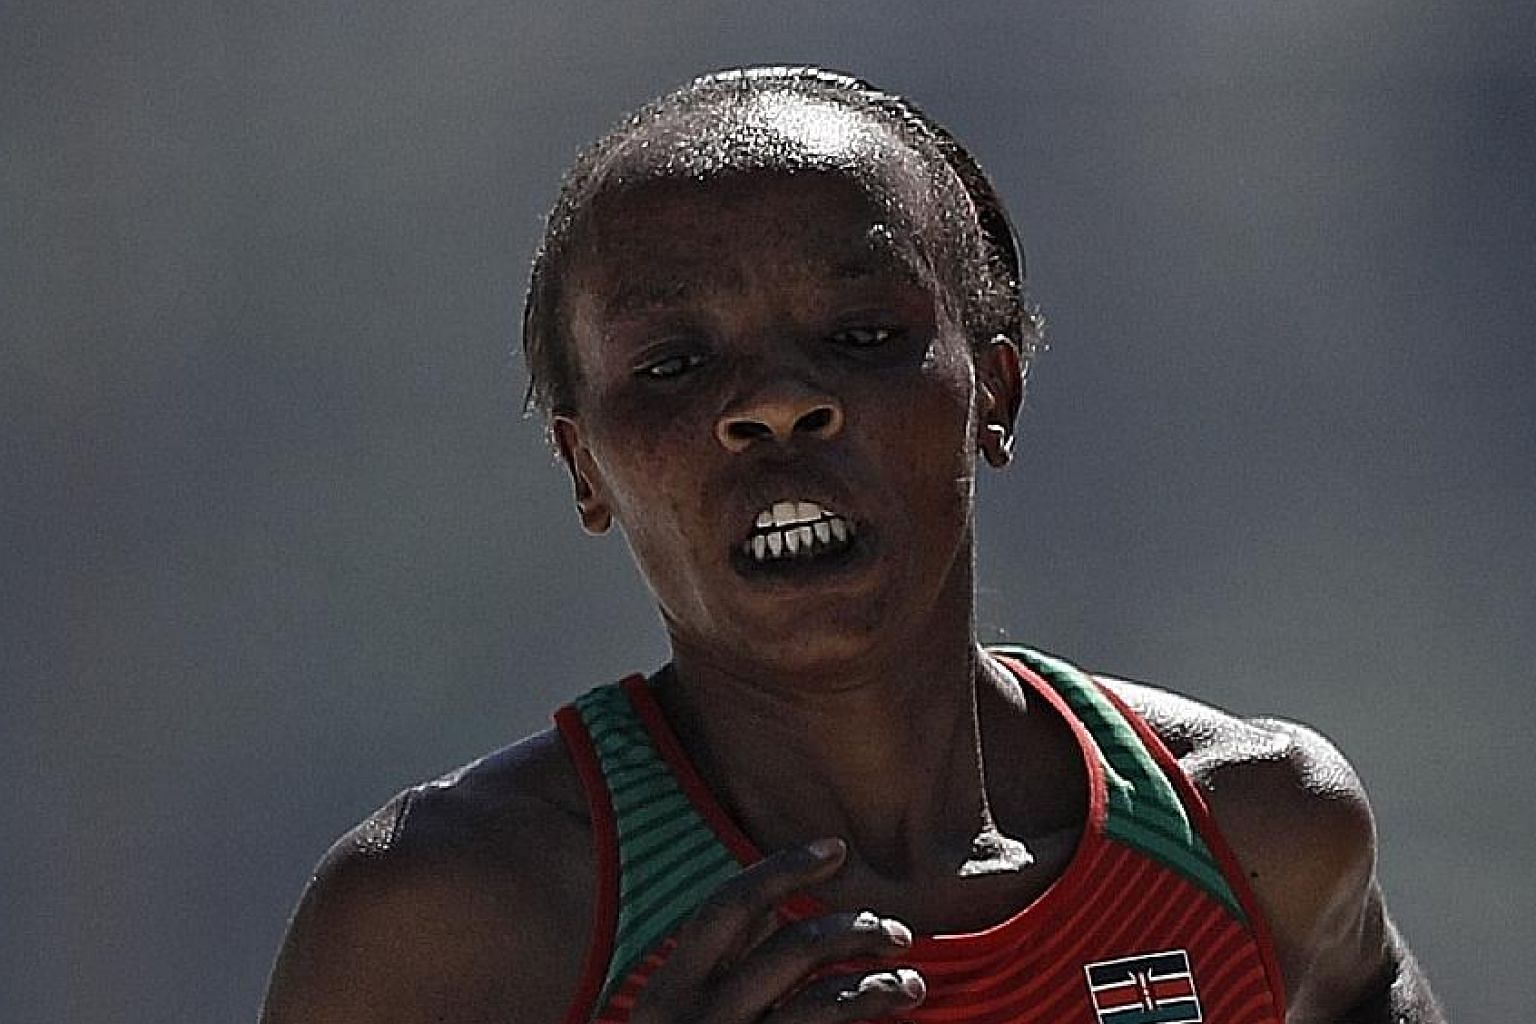 Rio Olympics marathon gold medallist Jemima Sumgong was caught in a surprise drug test in Kenya outside competition.